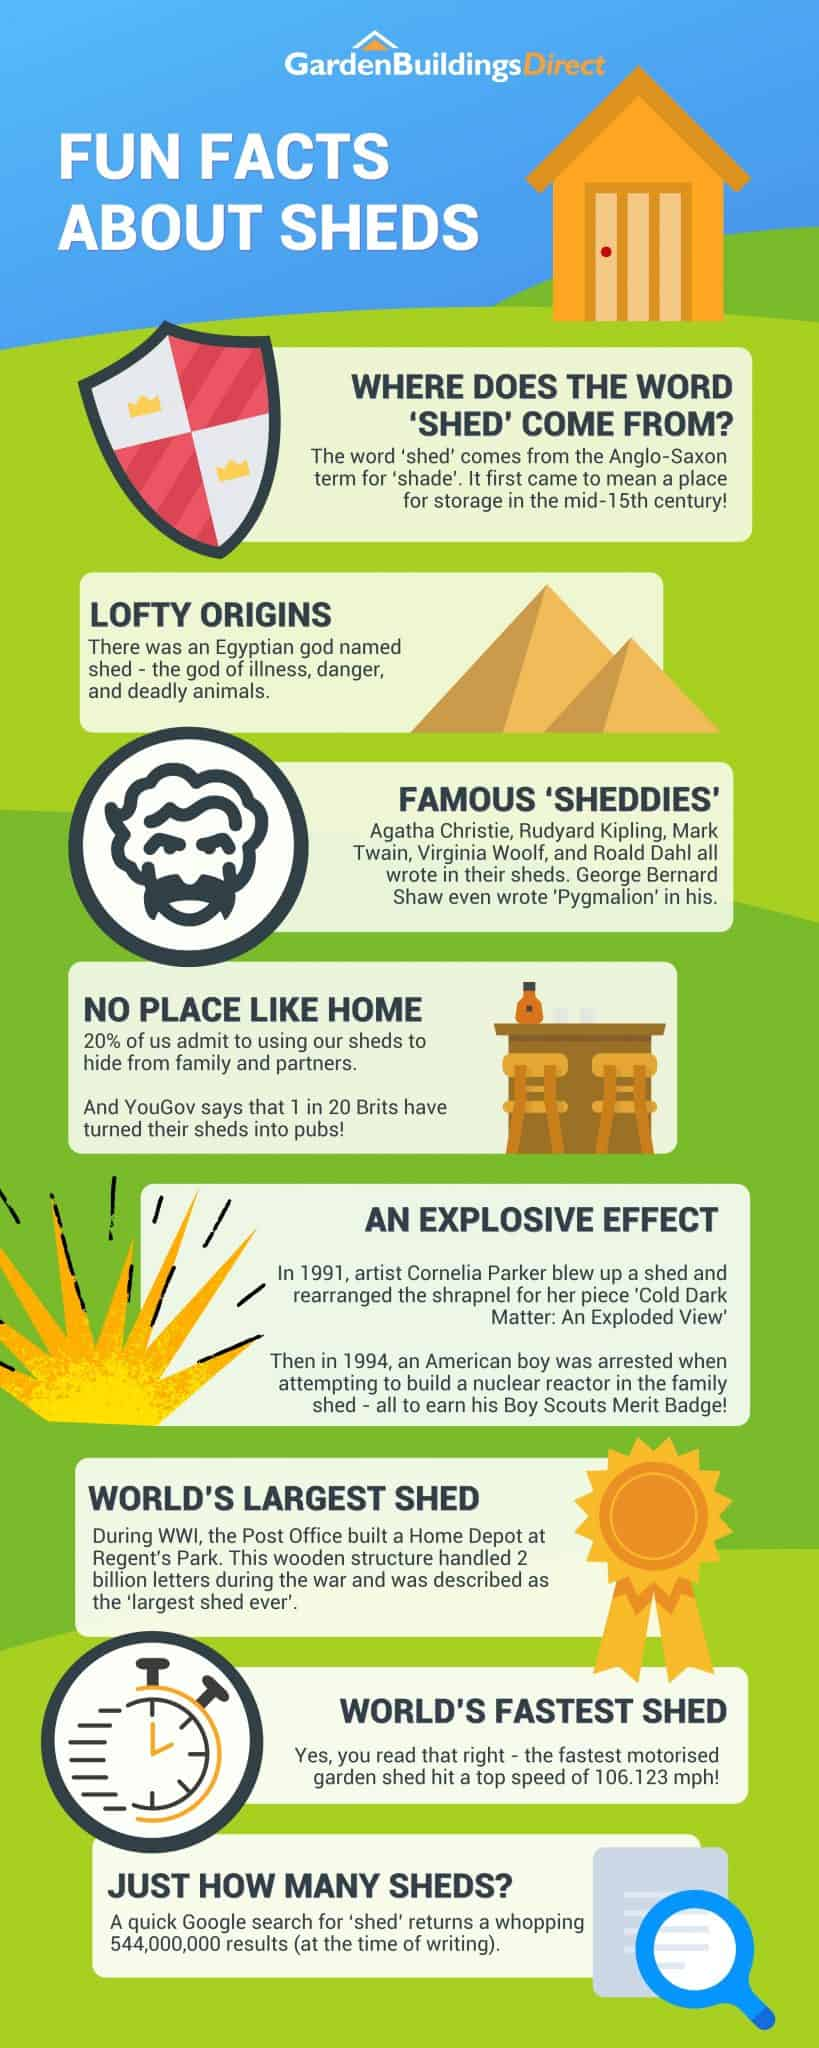 fun facts about sheds - cartoon shed sitting on a green hill backed by blue skies and garden buildings direct logo and facts about sheds in a long infographic